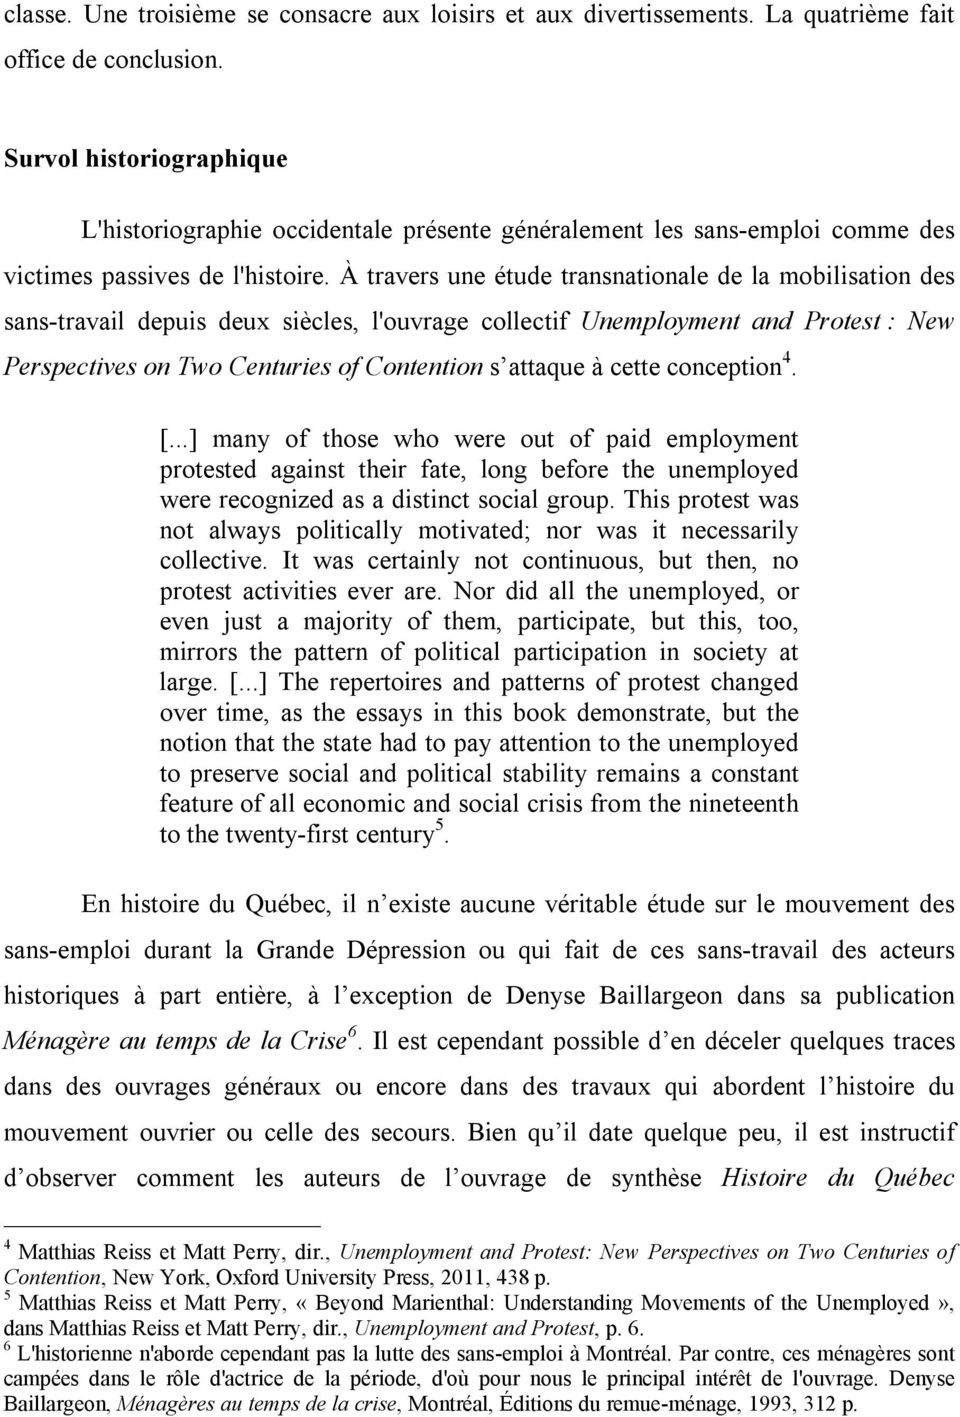 À travers une étude transnationale de la mobilisation des sans-travail depuis deux siècles, l'ouvrage collectif Unemployment and Protest : New Perspectives on Two Centuries of Contention s attaque à